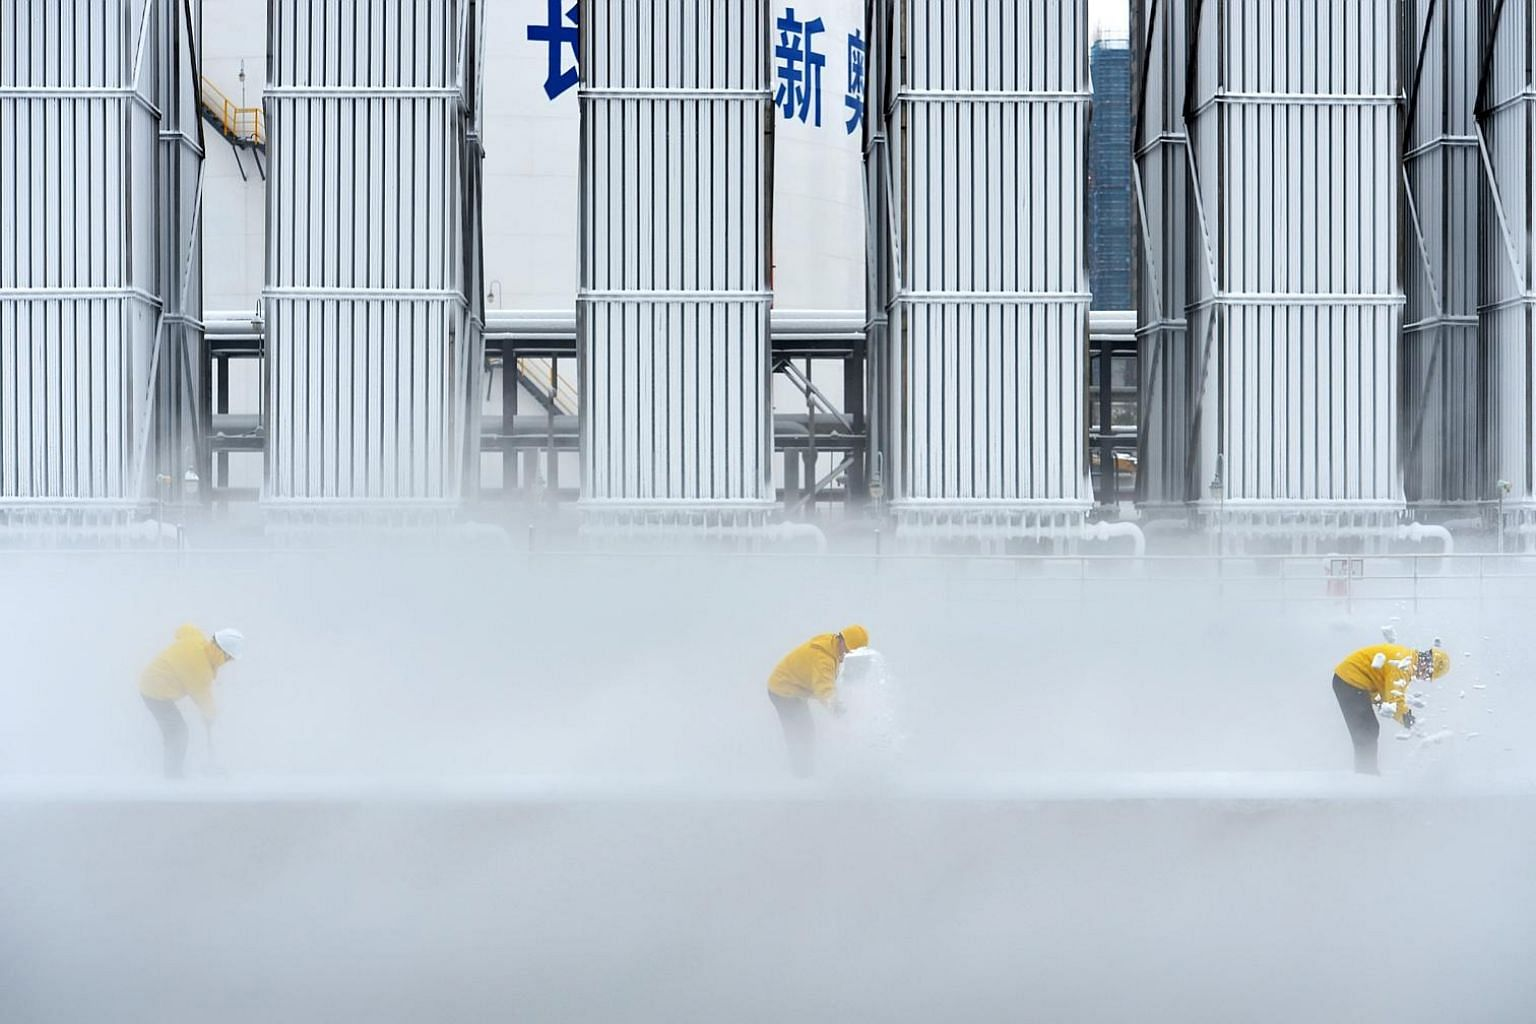 Workers removing snow at a liquefied natural gas facility of ENN Group in Changsha, in China's Hunan province, earlier this week. A final investment decision could be taken on more than 60 million tonnes per annum of LNG capacity this year, well abov